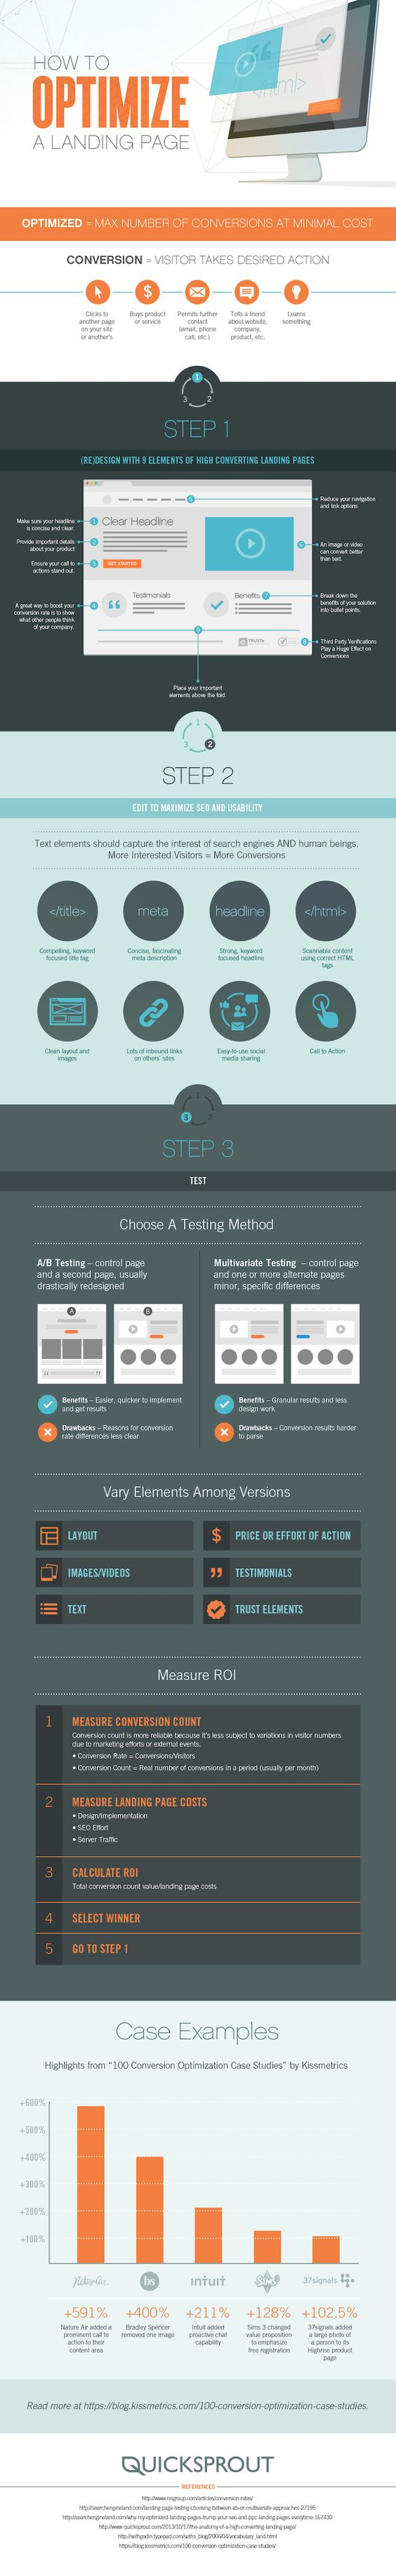 How to Optimize a Landing Page   #Infographic #HowTo #LandingPage